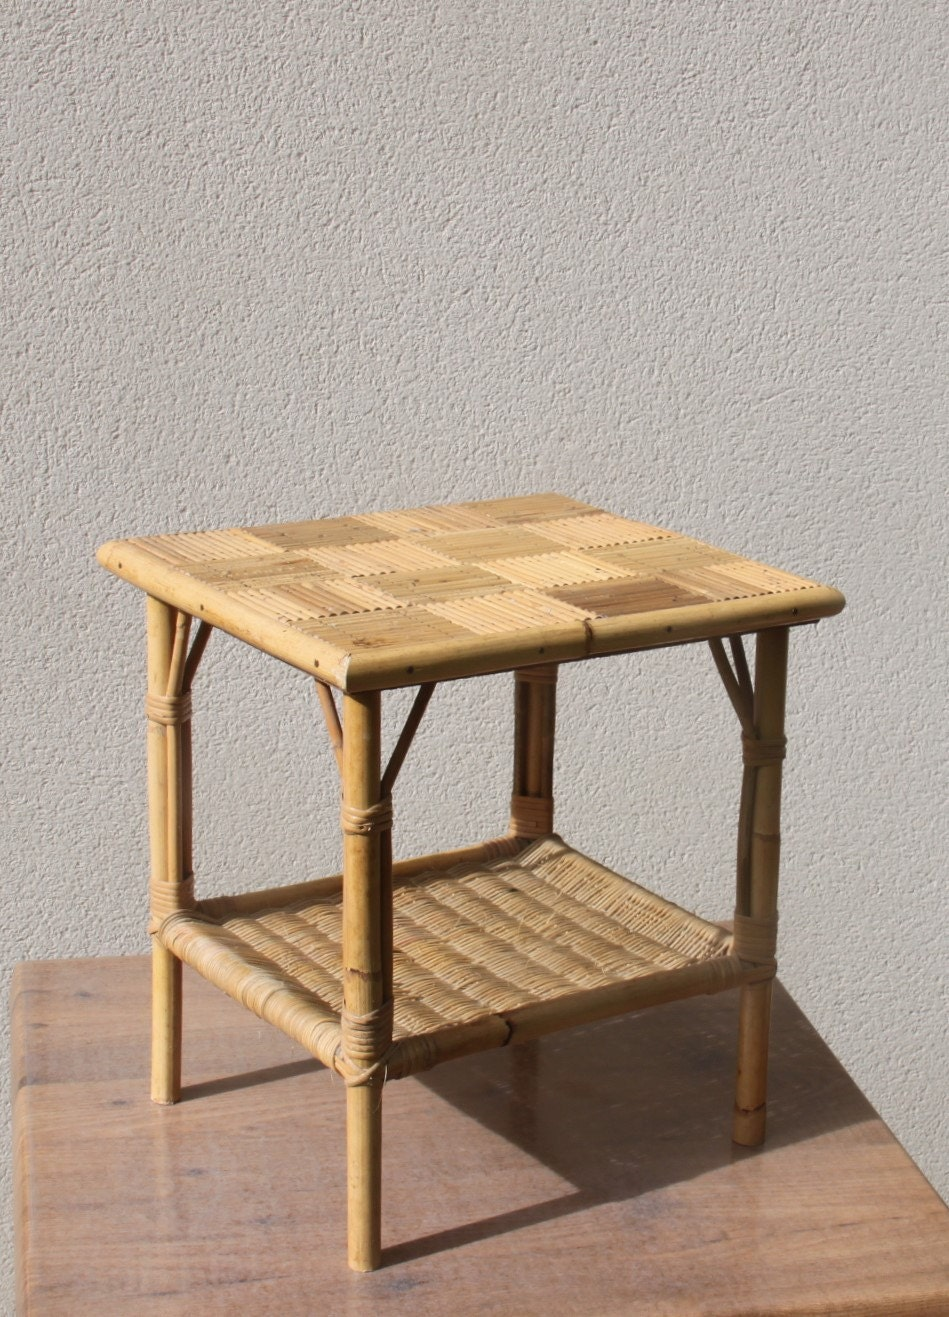 Small coffee table small table wicker rattan bamboo straw for Table basse petite